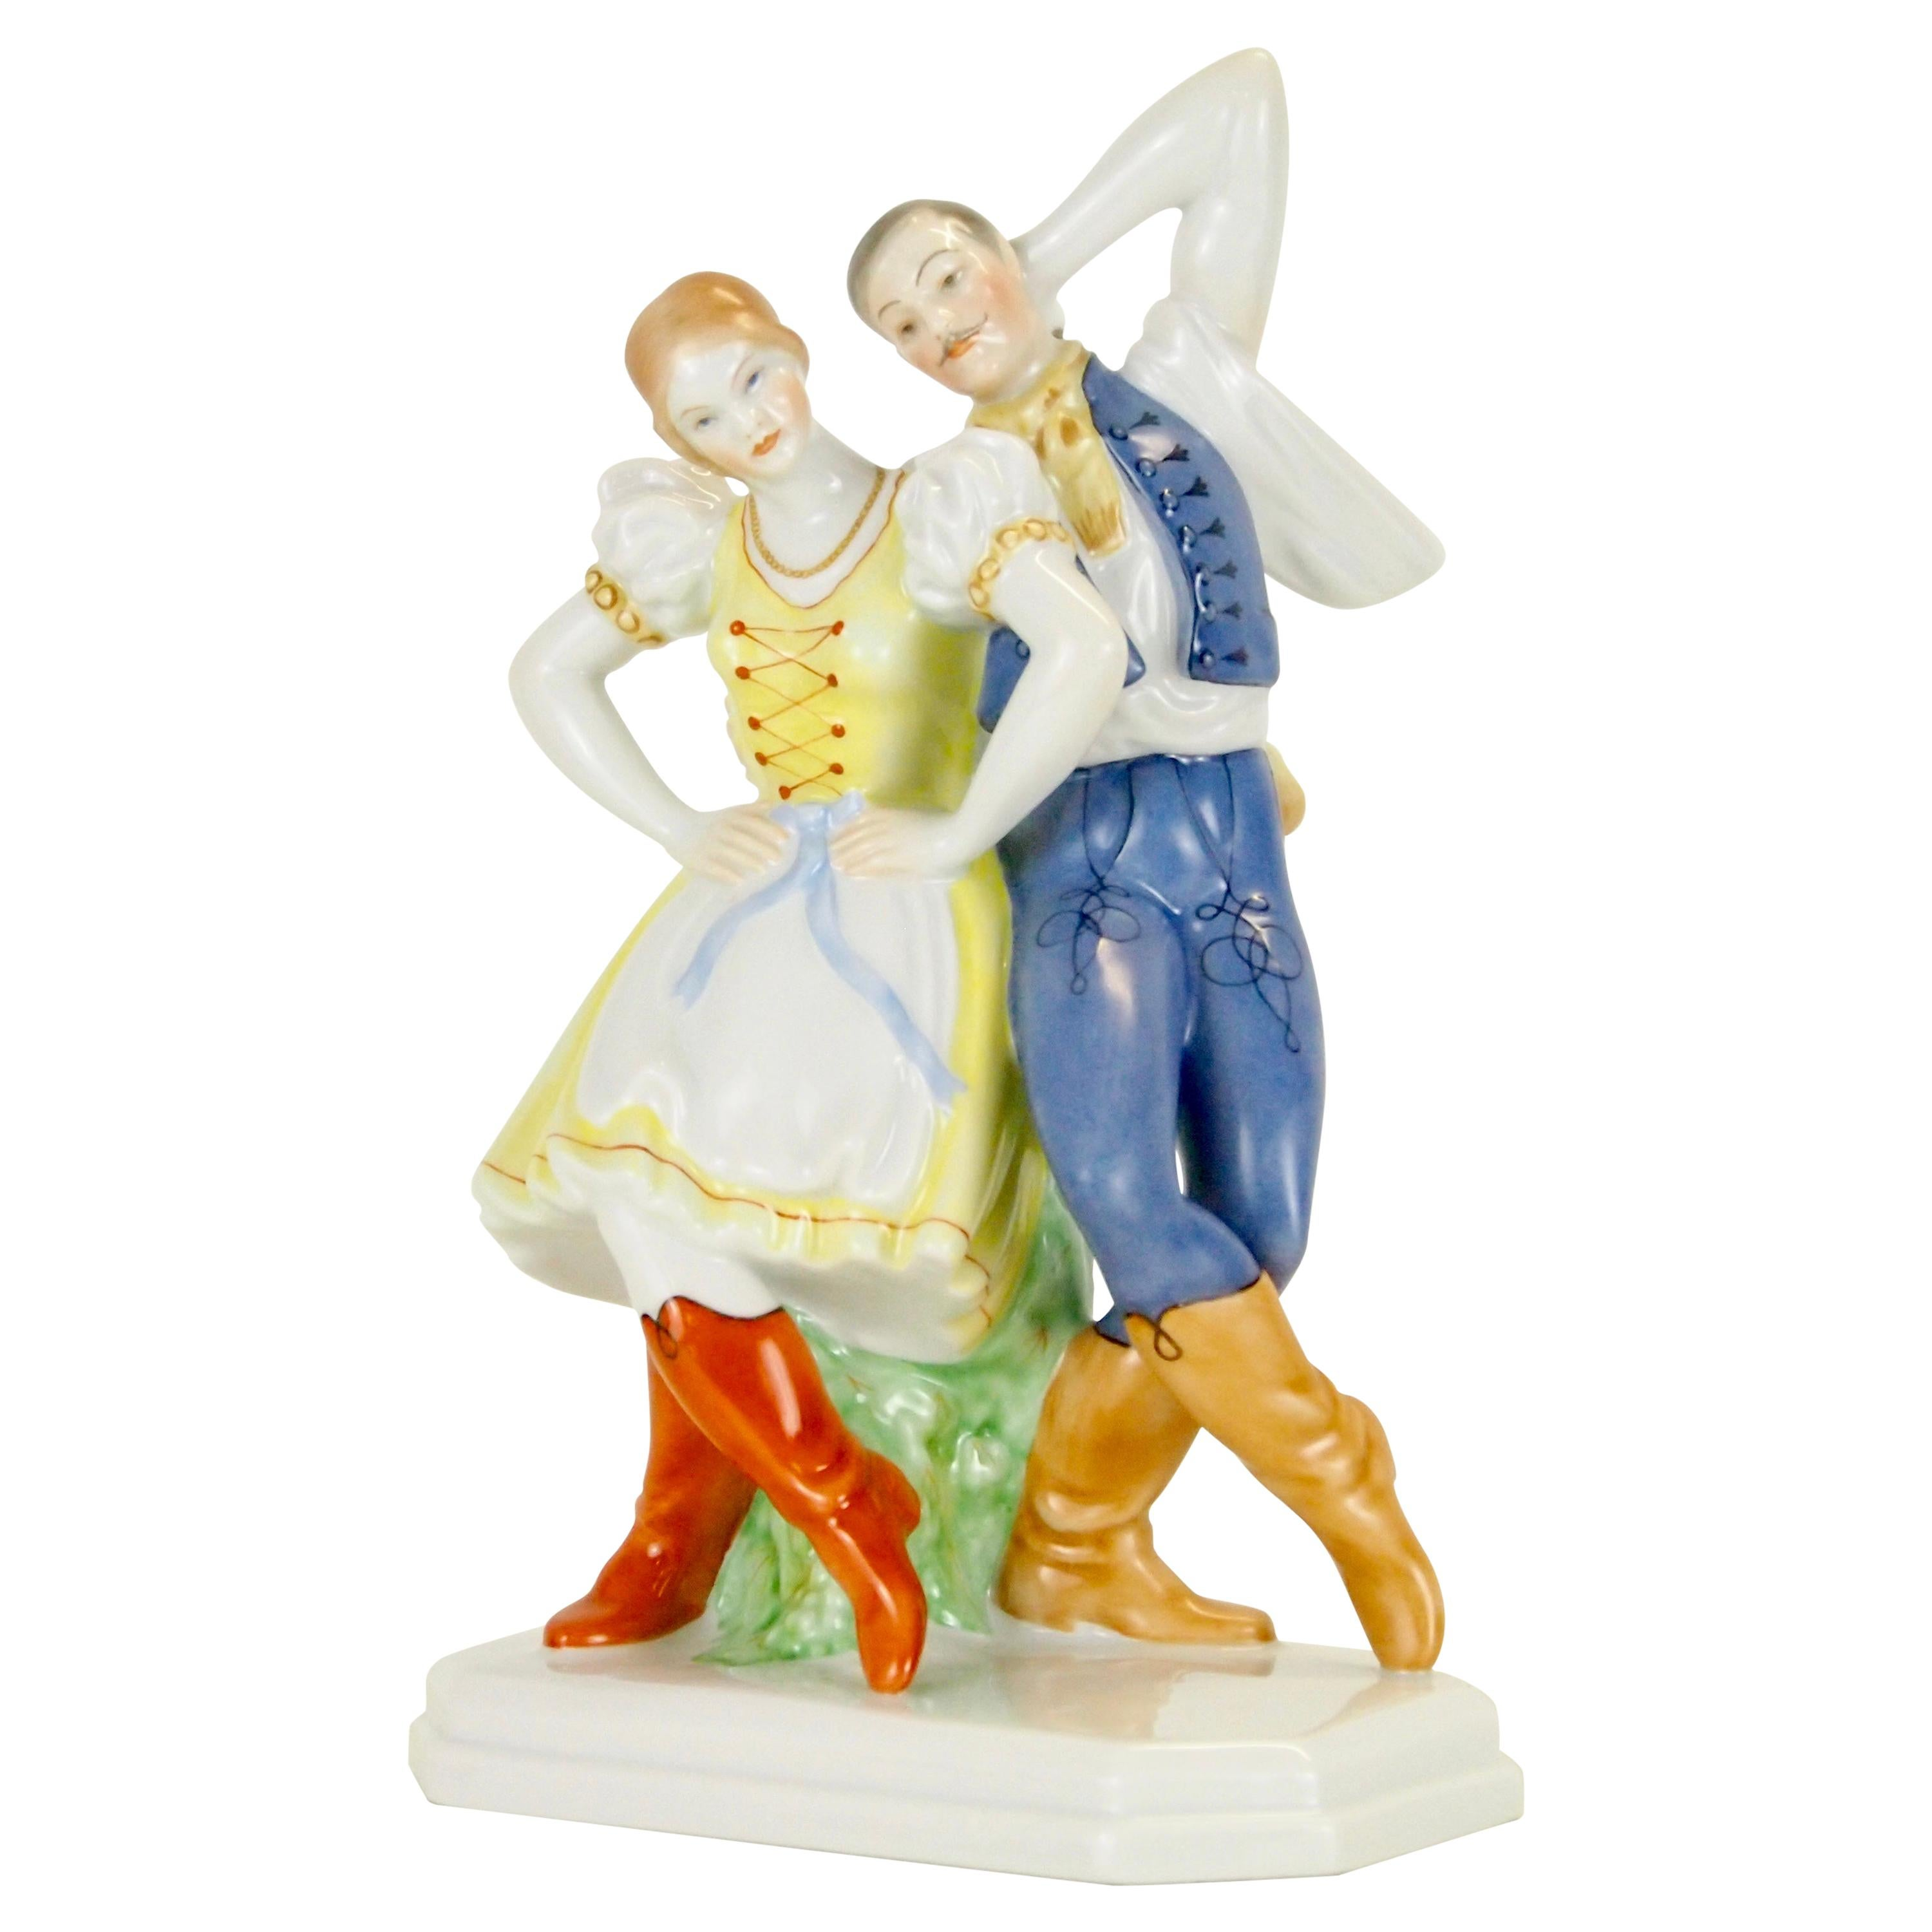 Dancing Couple Porcelain Figurine by Herend Hungary